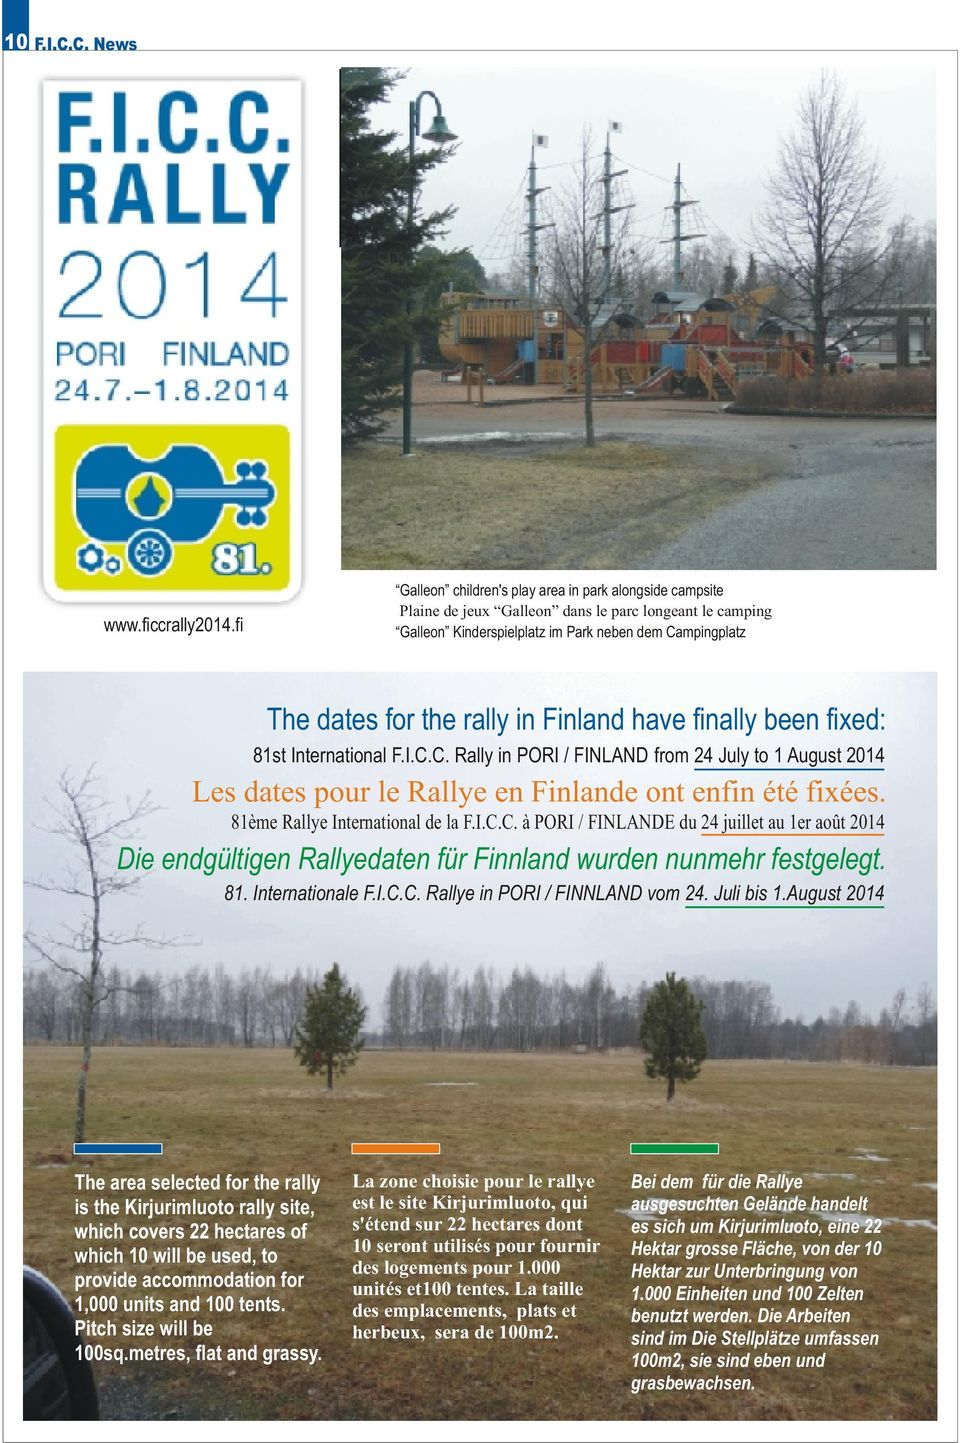 Finland have finally been fixed: 81st International F.I.C.C. Rally in PORI / FINLAND from 24 July to 1 August 2014 Les dates pour le Rallye en Finlande ont enfin été fixées.